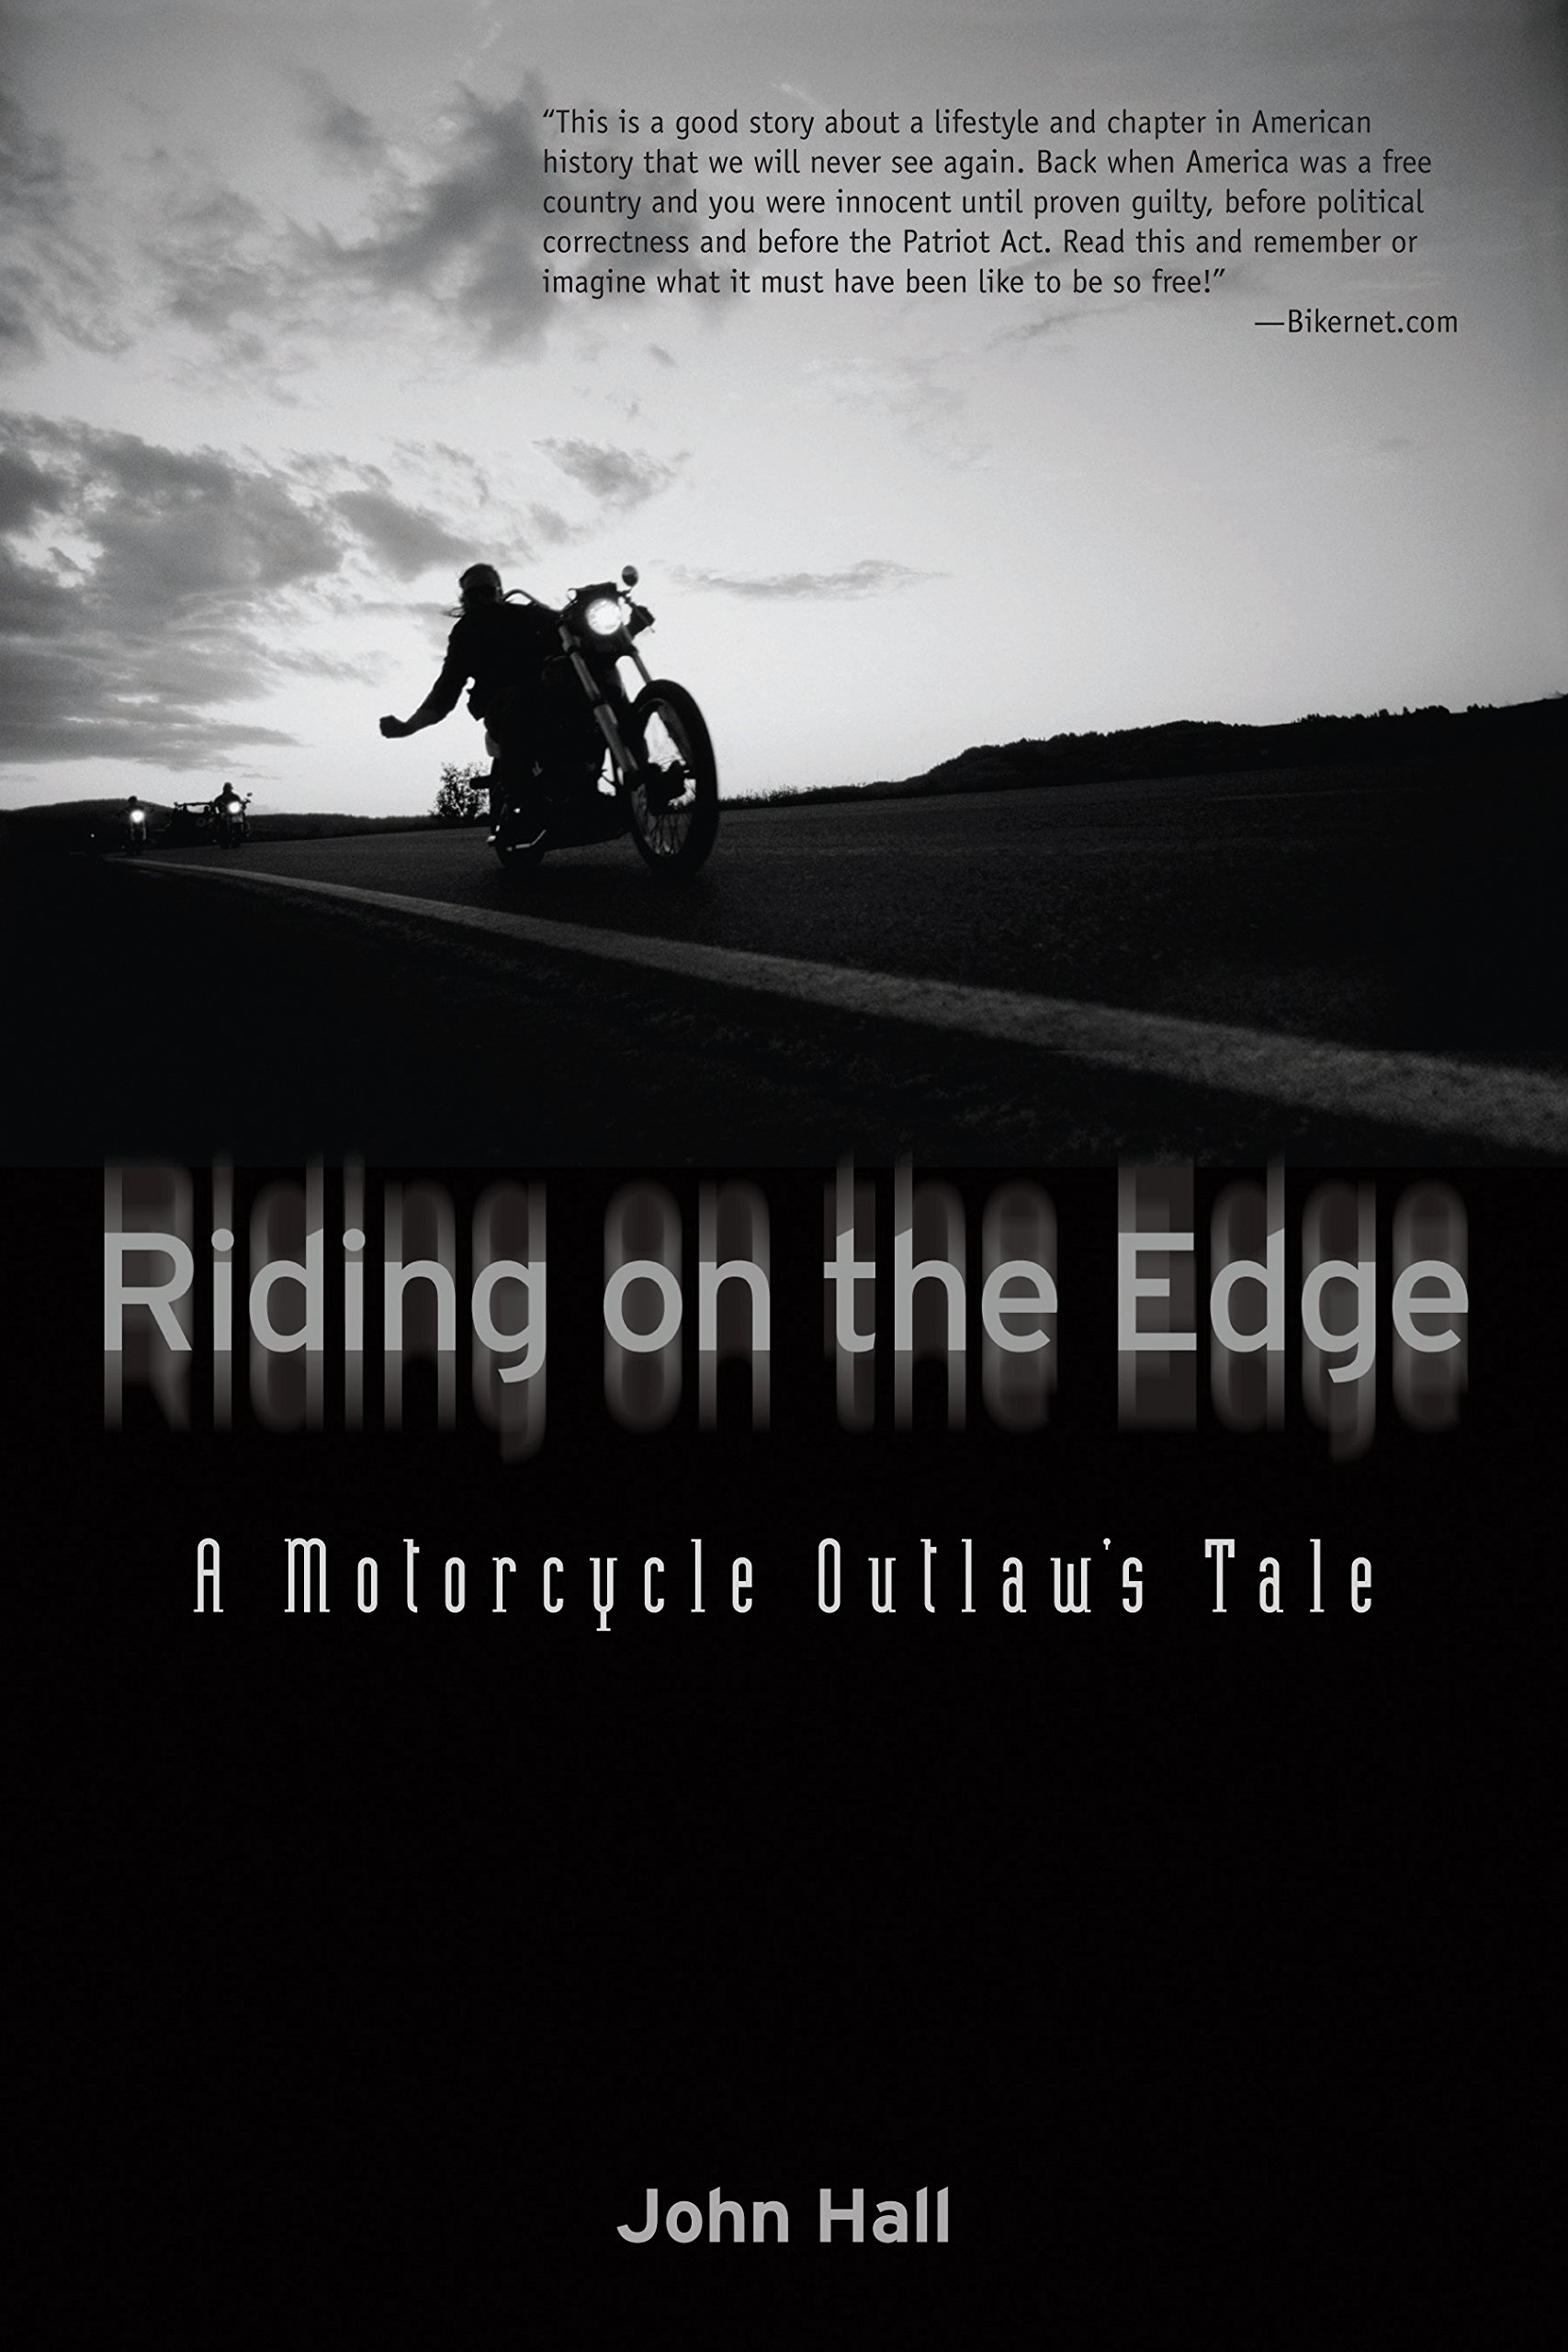 Riding on the Edge: A Motorcycle Outlaw's Tale: John Hall